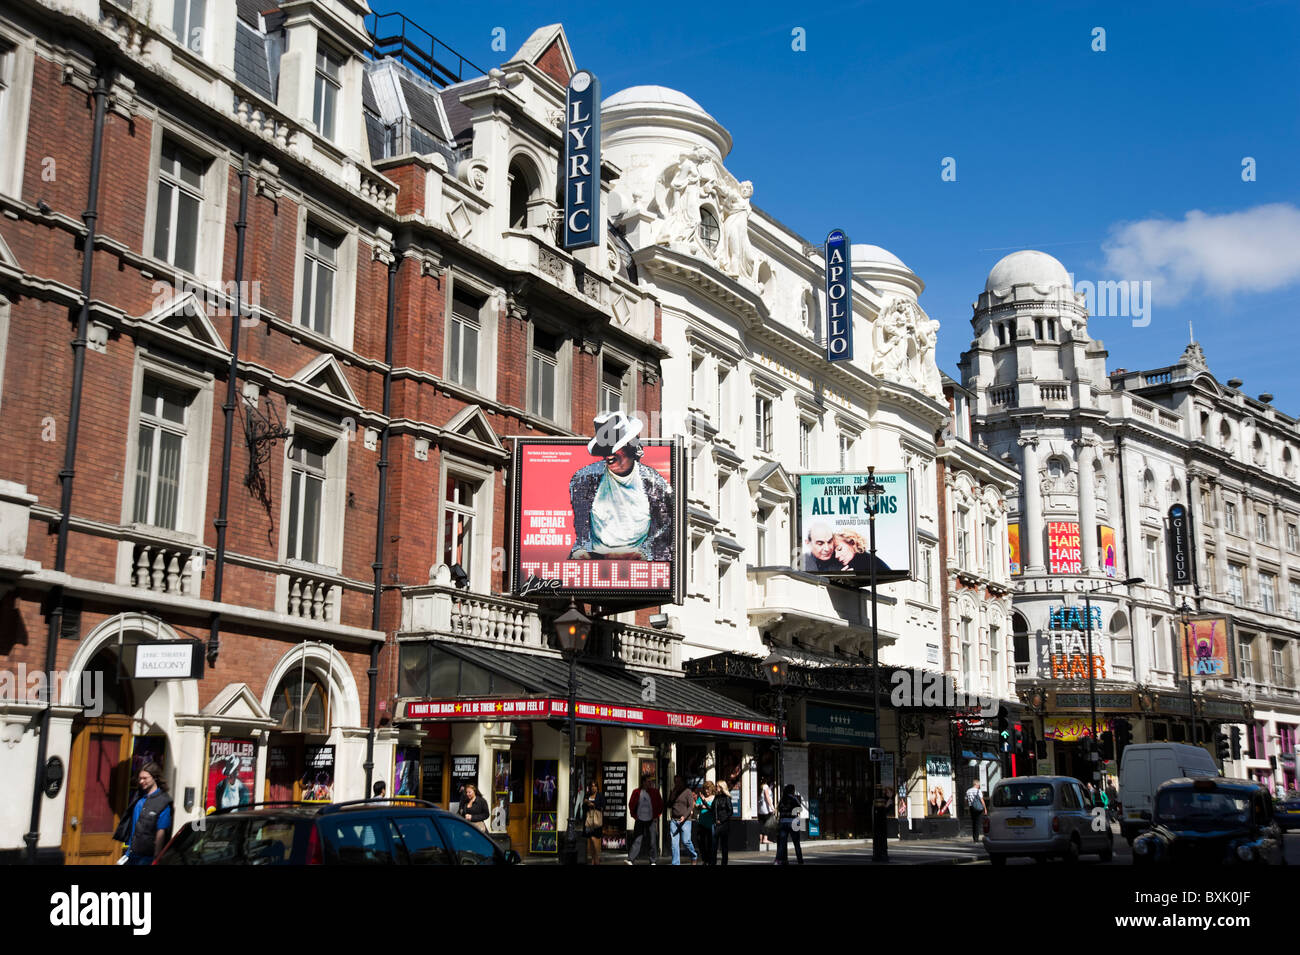 Theatreland on Shaftesbury Avenue, London, England, Britain, UK - Stock Image